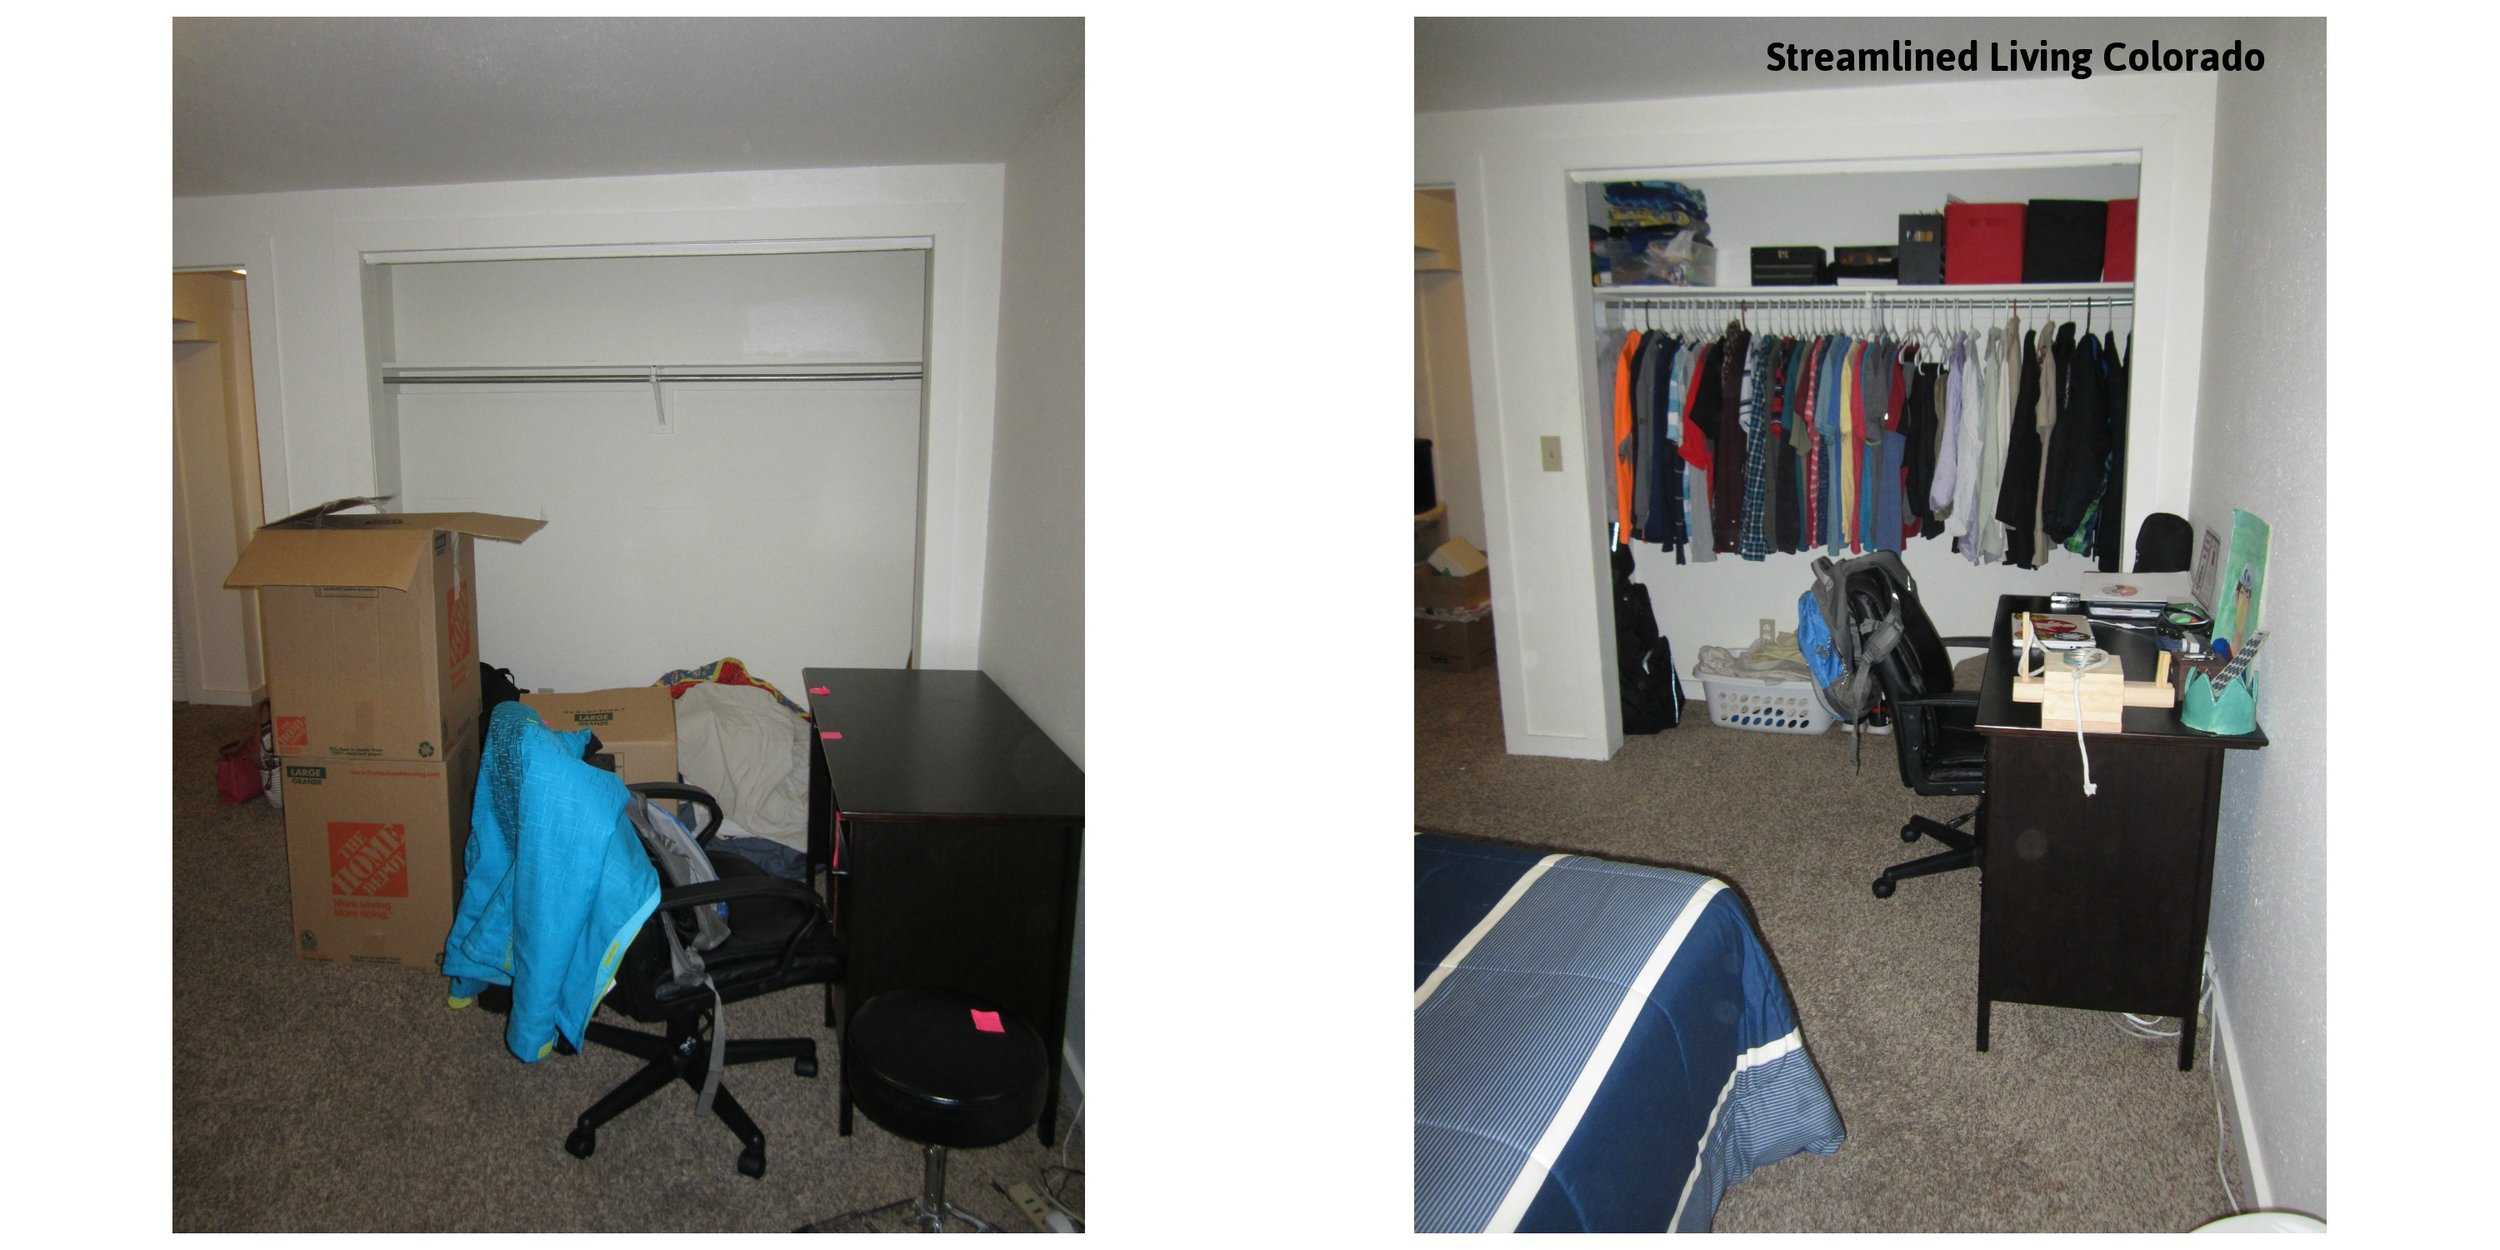 unpack 3 signed moving services unpack unpacking organized professional organizer professionally organized Streamlined Living Colorado.jpg